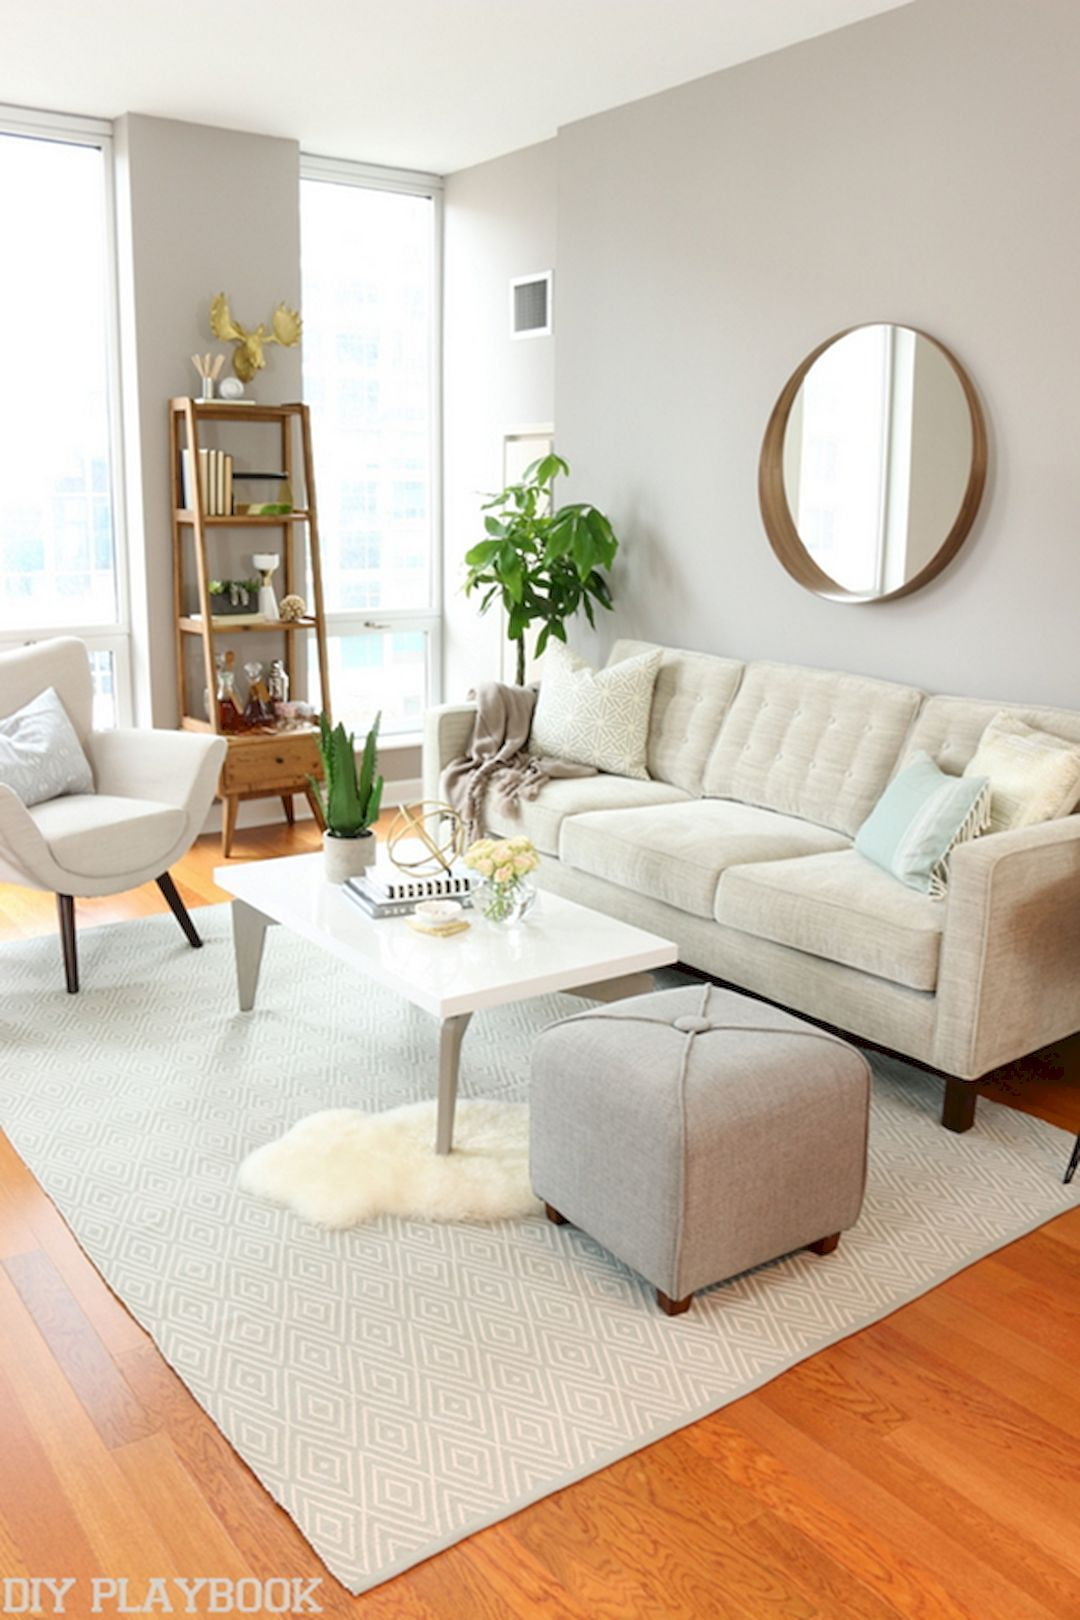 65 Well-Formed Living Rooms for Apartment | Pinterest | Esszimmer ...